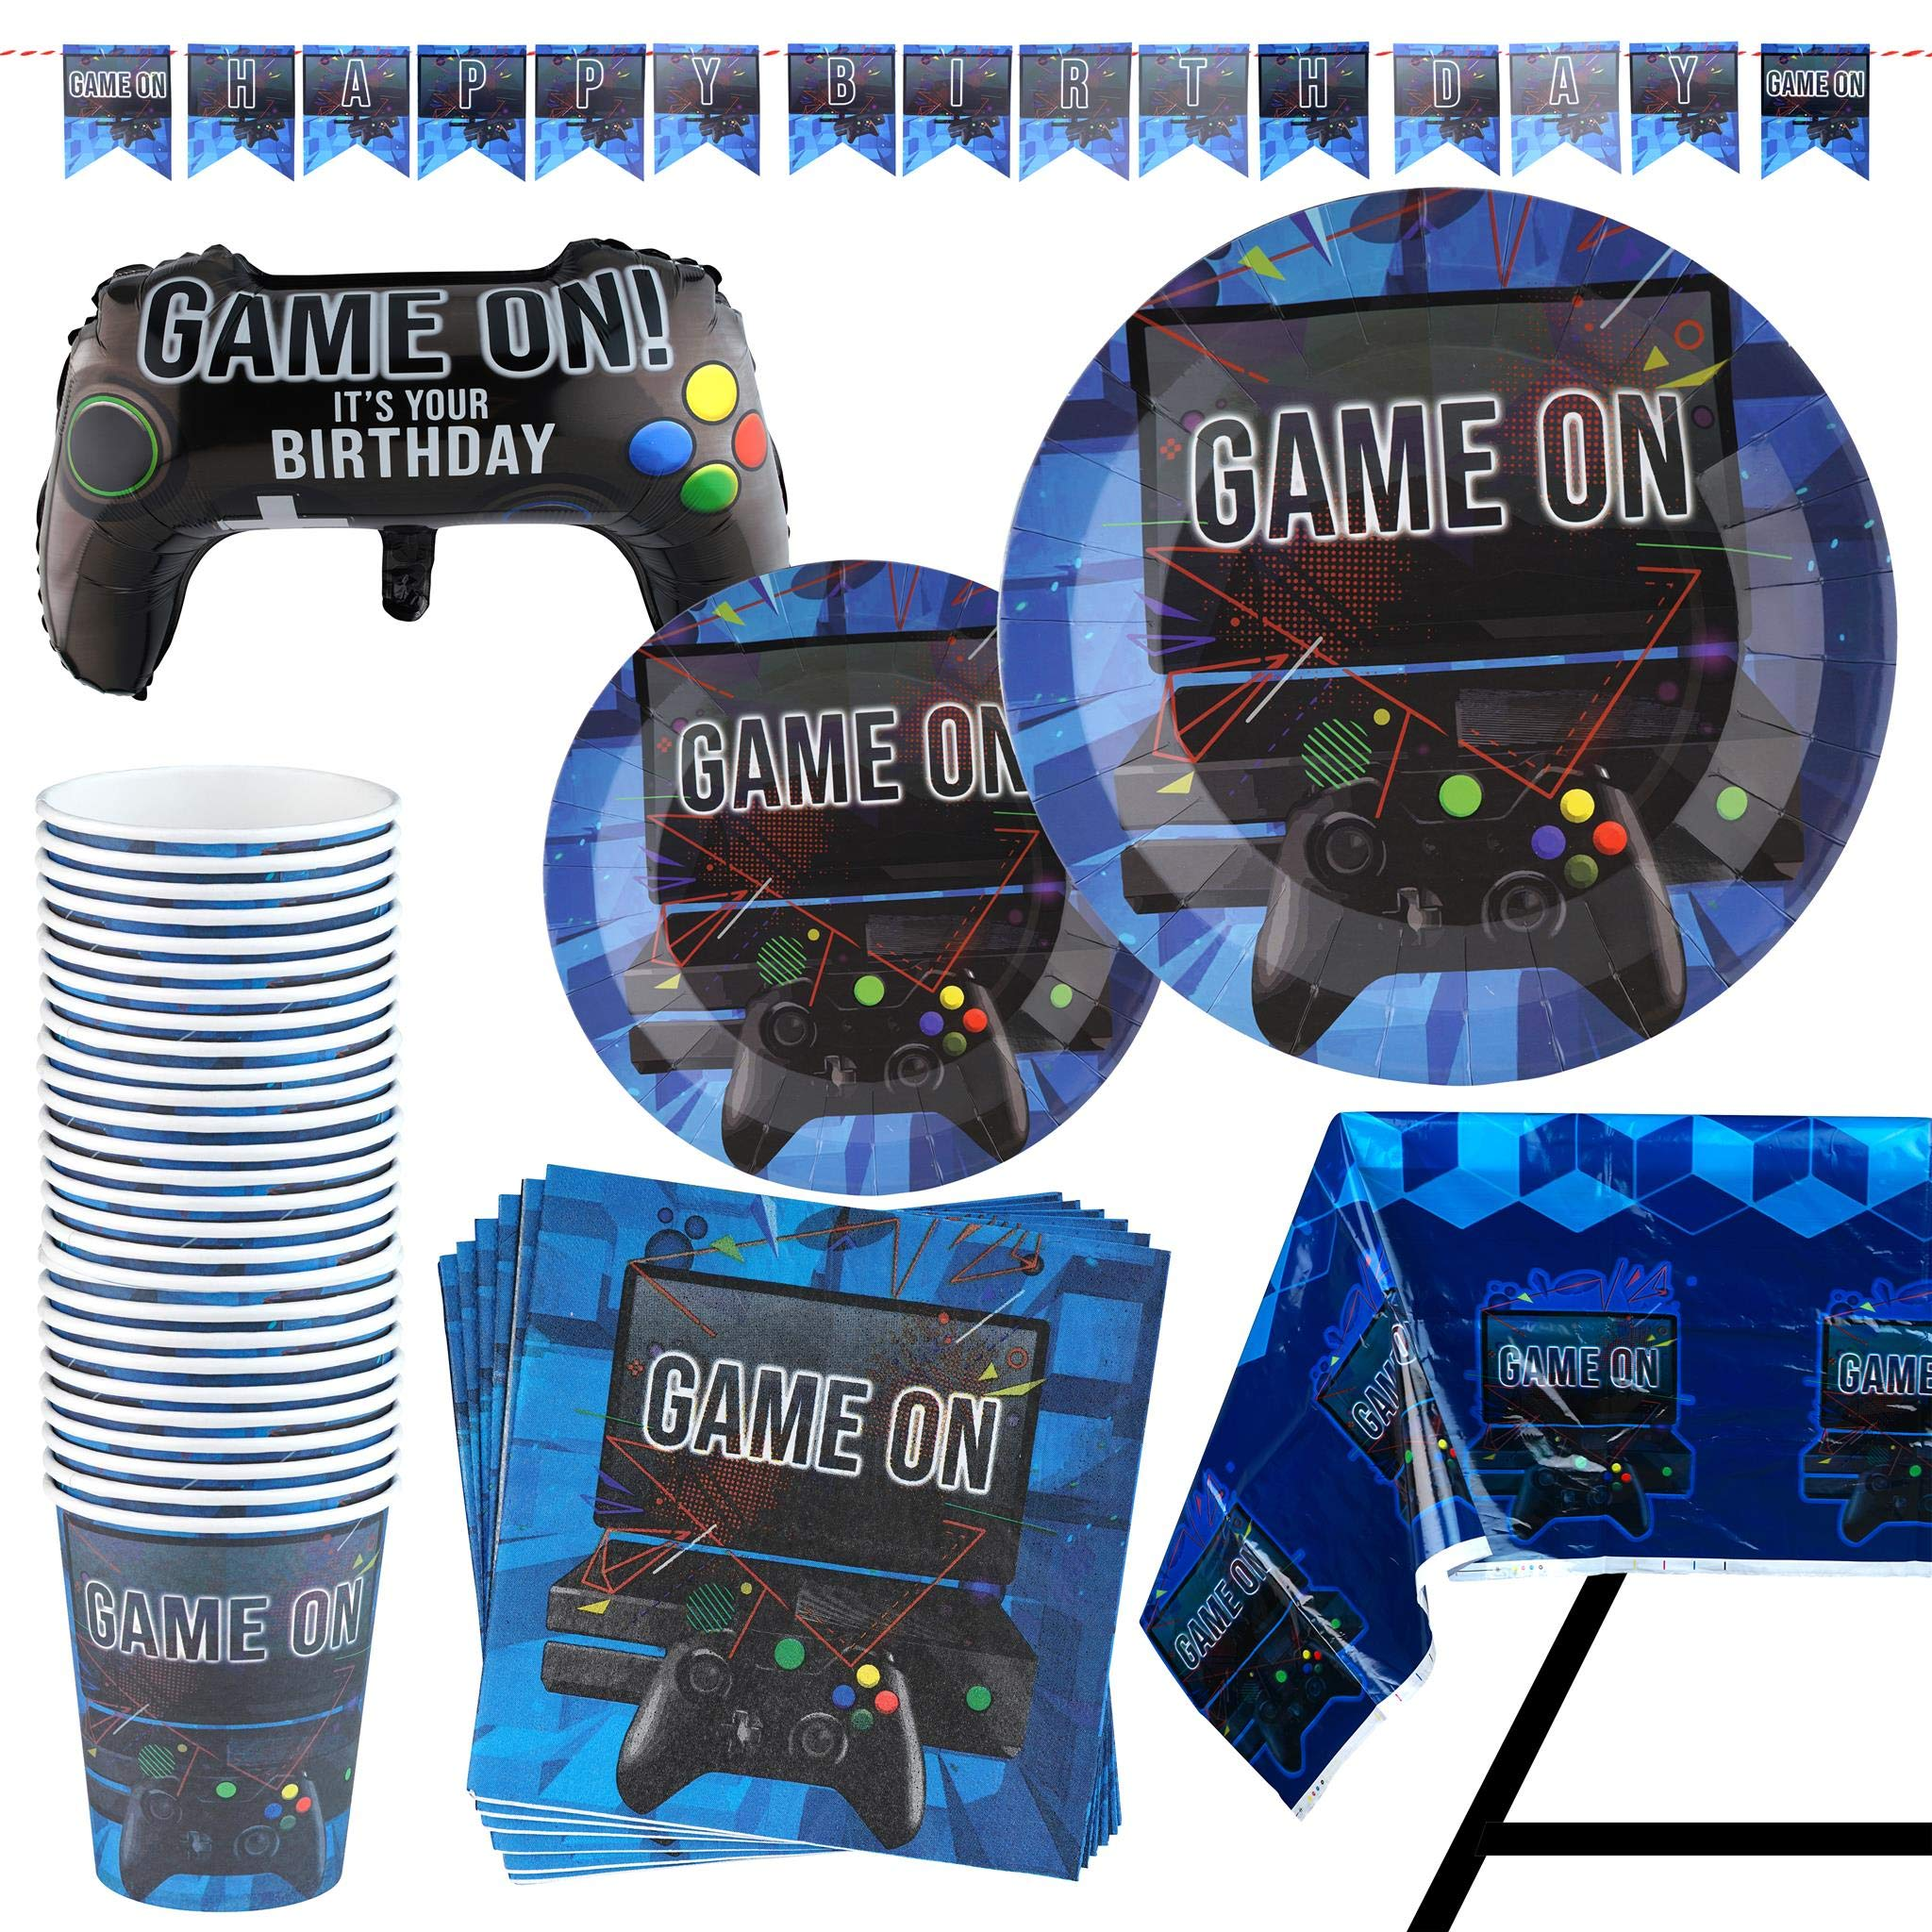 83 Piece Video Gaming Party Supplies Set Including Banner, Plates, Cups, Napkins, Tablecloth, X-Large Joy Stick Controller Balloon - Serves 20 by Scale Rank